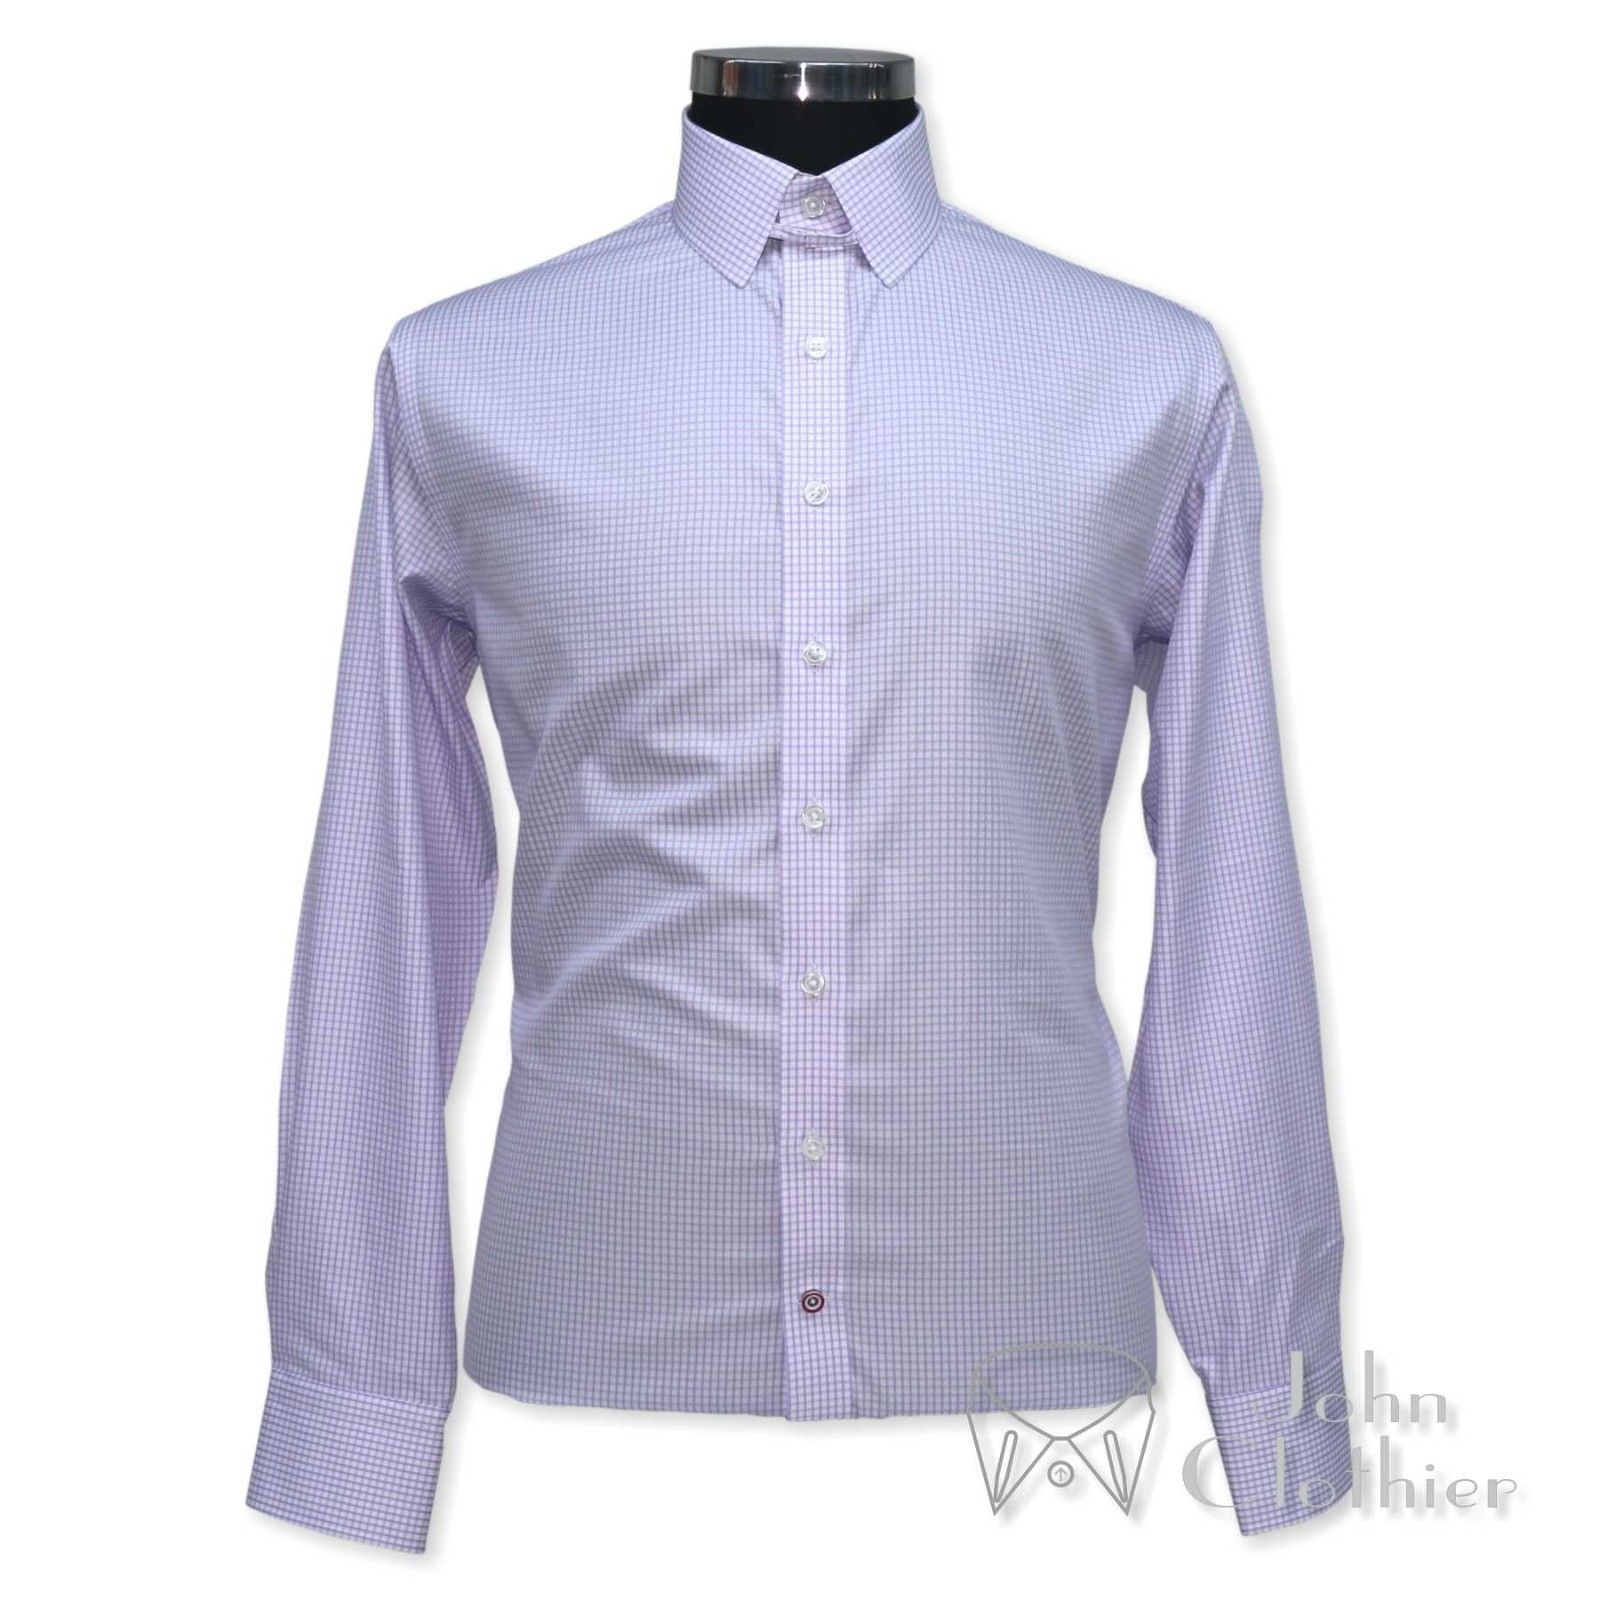 New Mens Cotton shirt Tab collar Lilac White checks Loop Bond collar Cufflinks